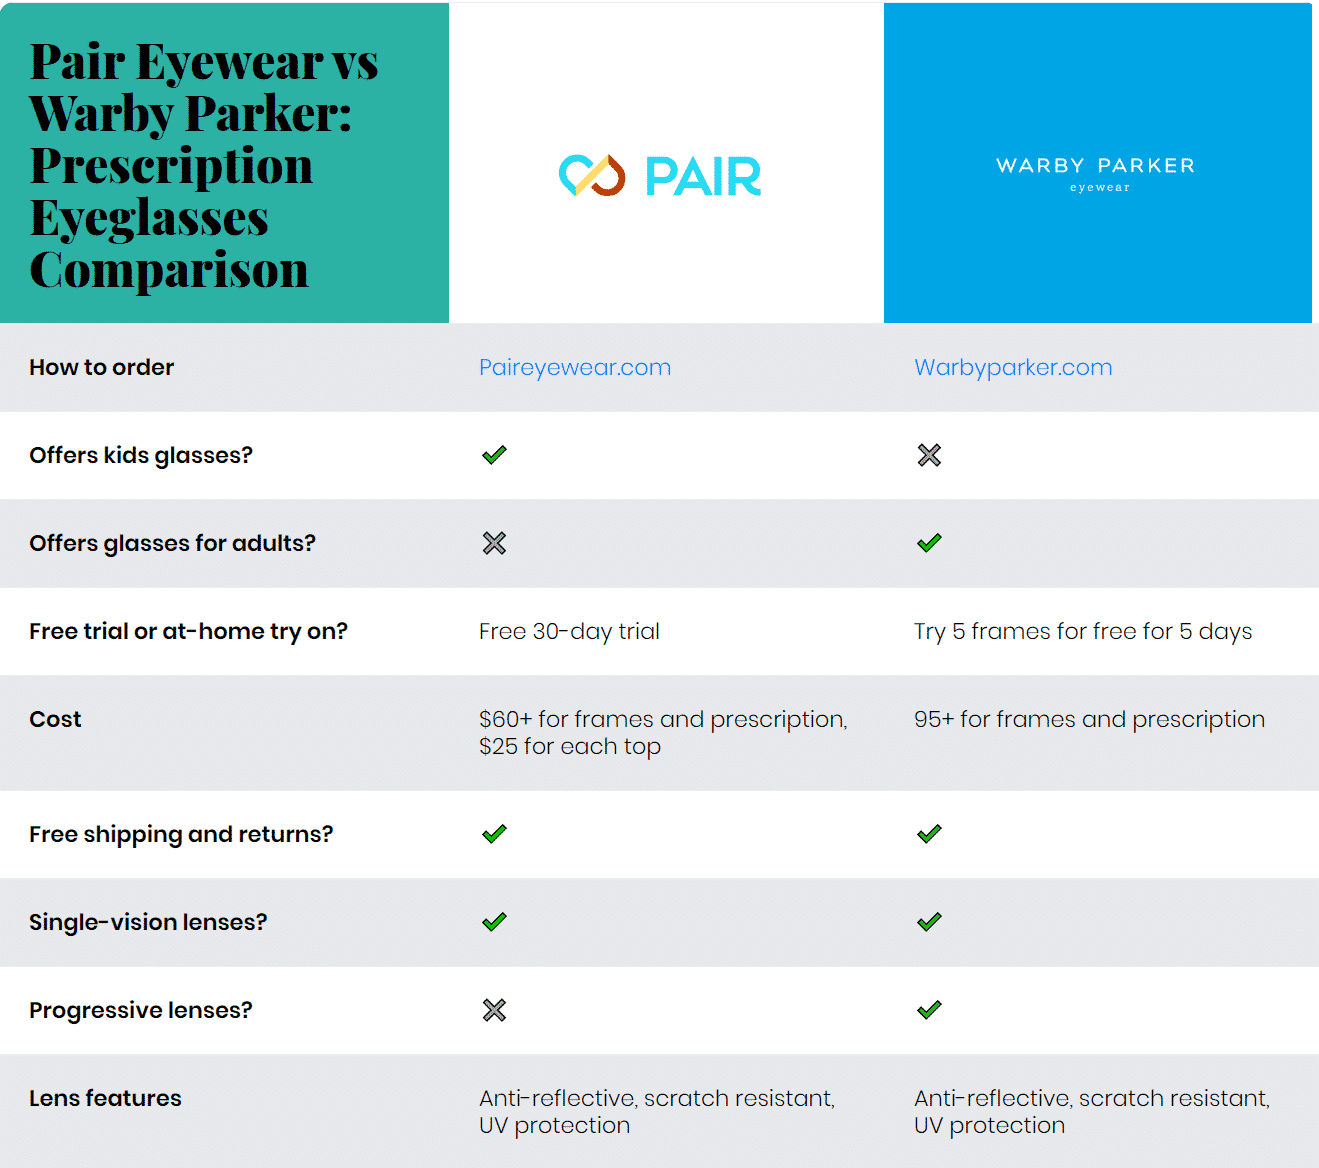 Pair Eyewear vs Warby Parker: Prescription Eyeglasses Comparison